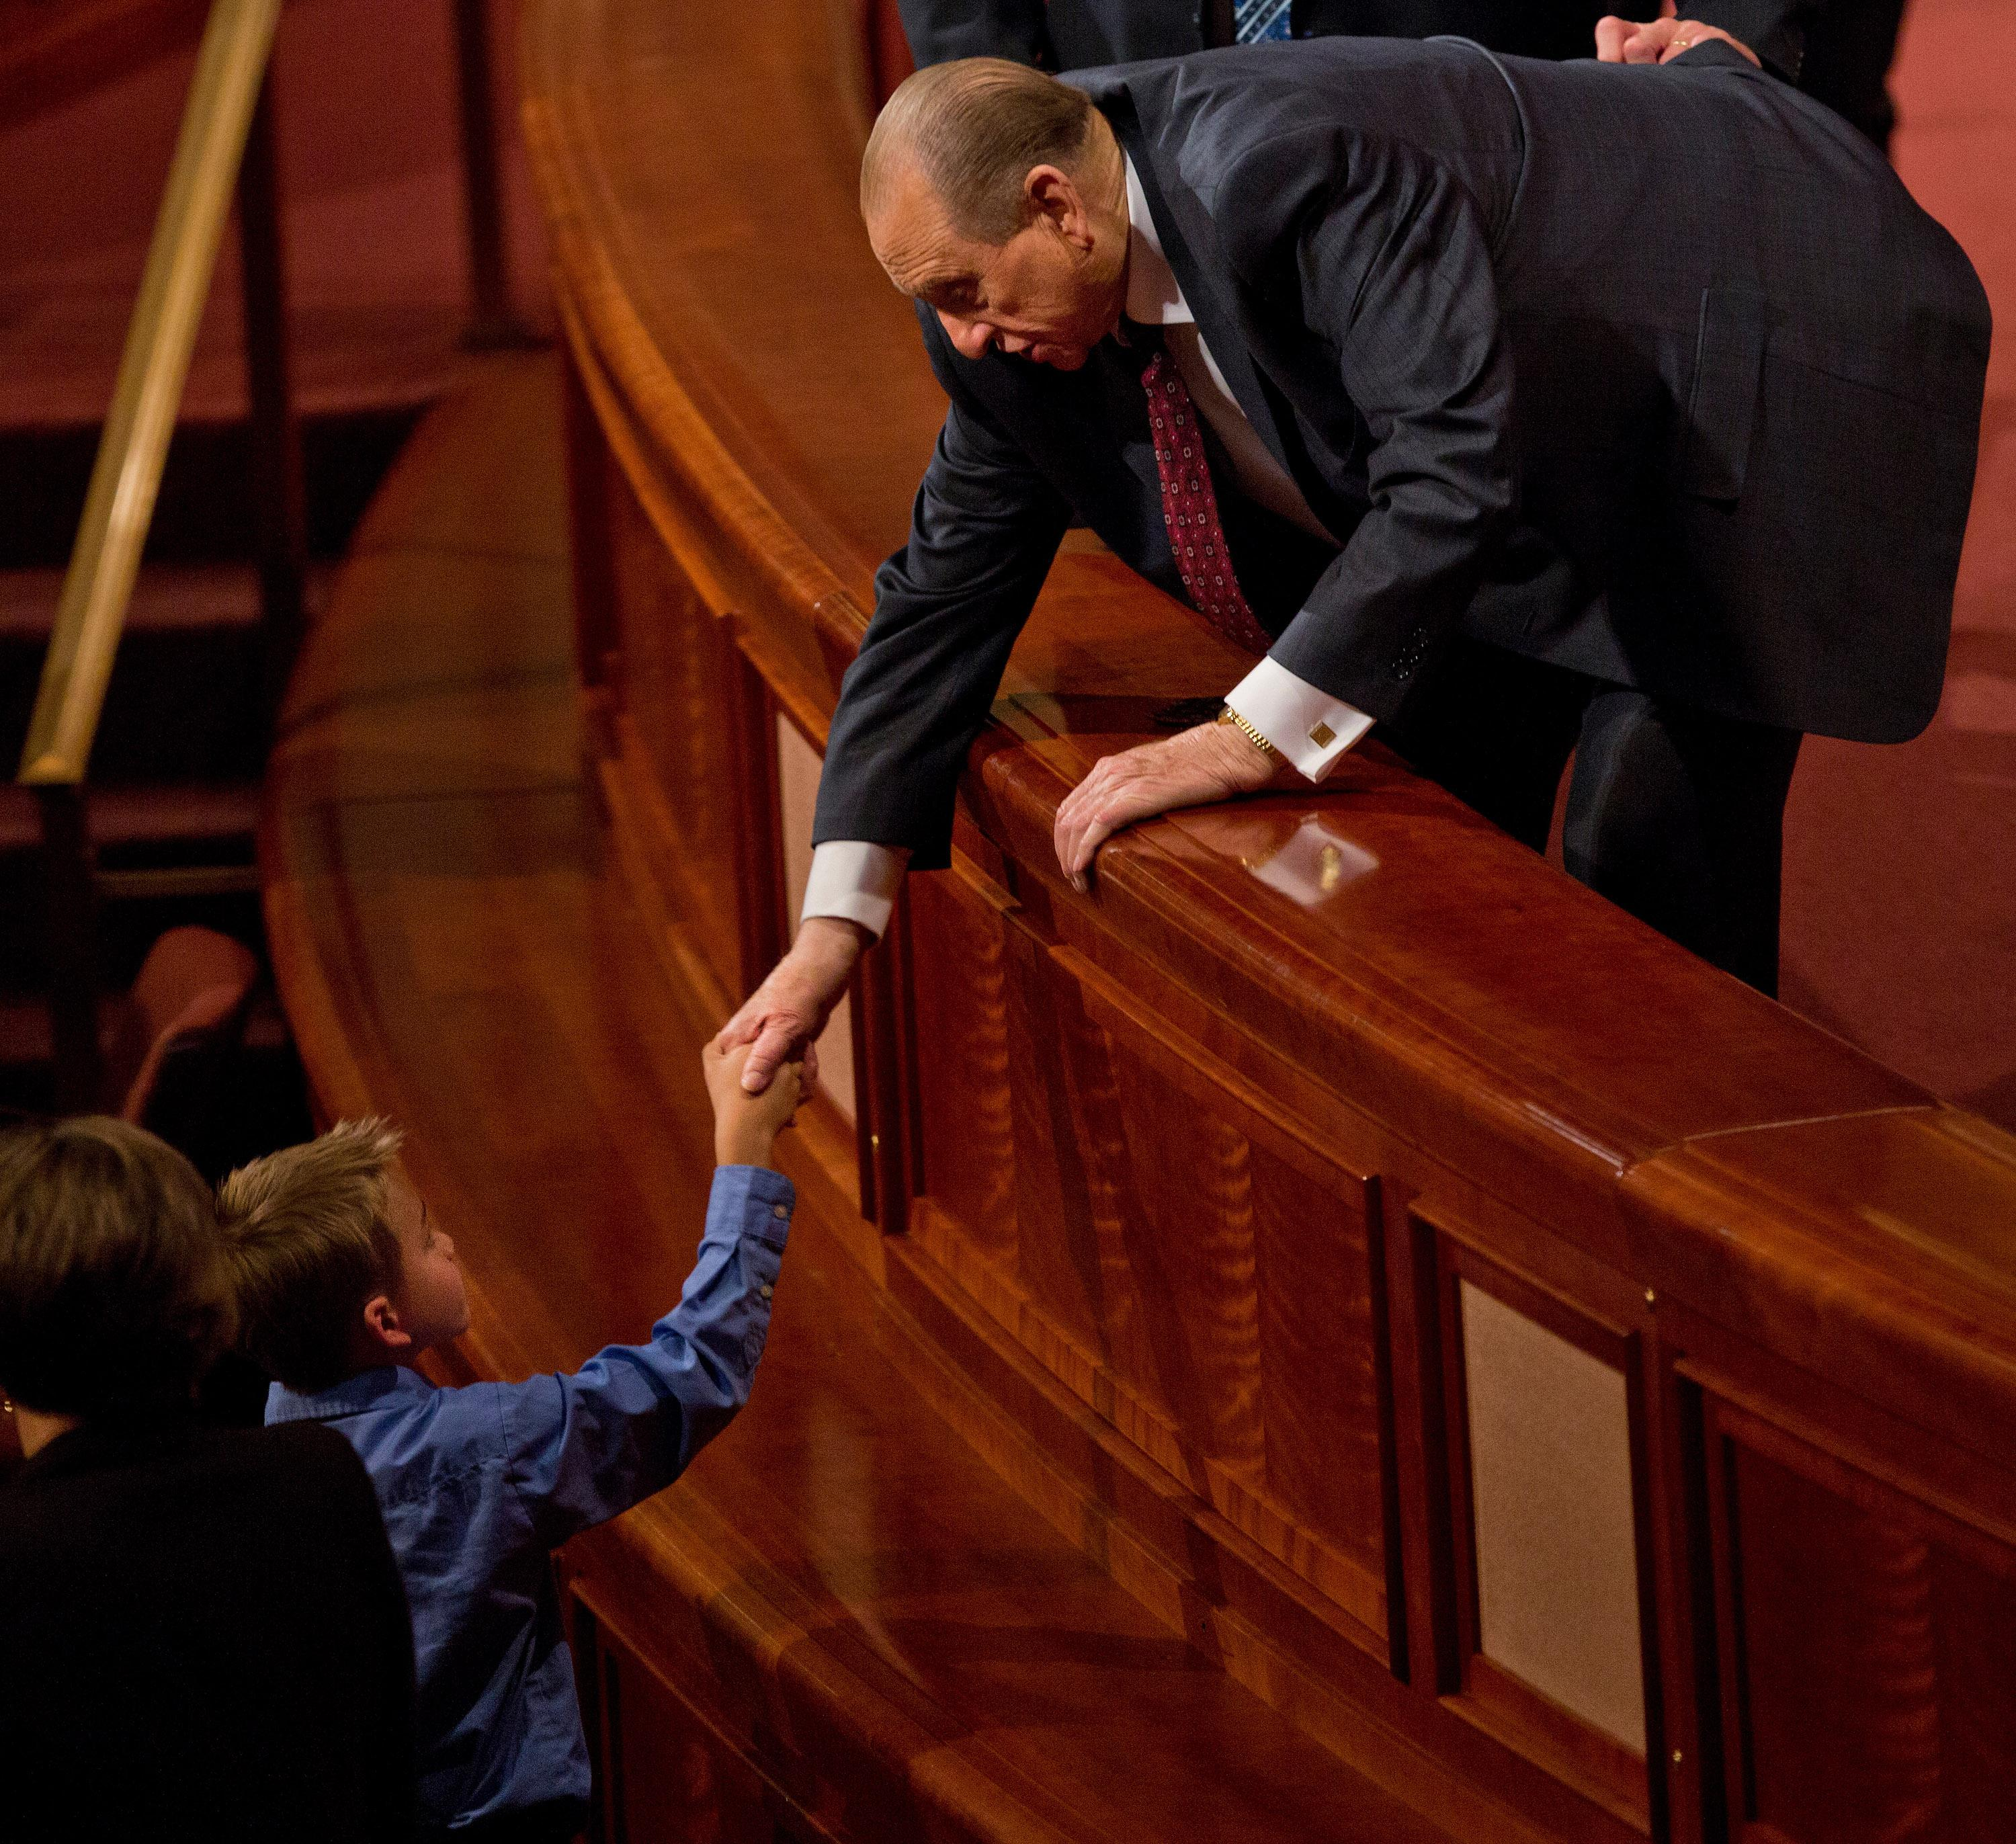 President Thomas S. Monson shakes hands with a boy at the Saturday afternoon session of general conference, October 5, 2013. (Photo: MormonNewsroom.org)<p></p>